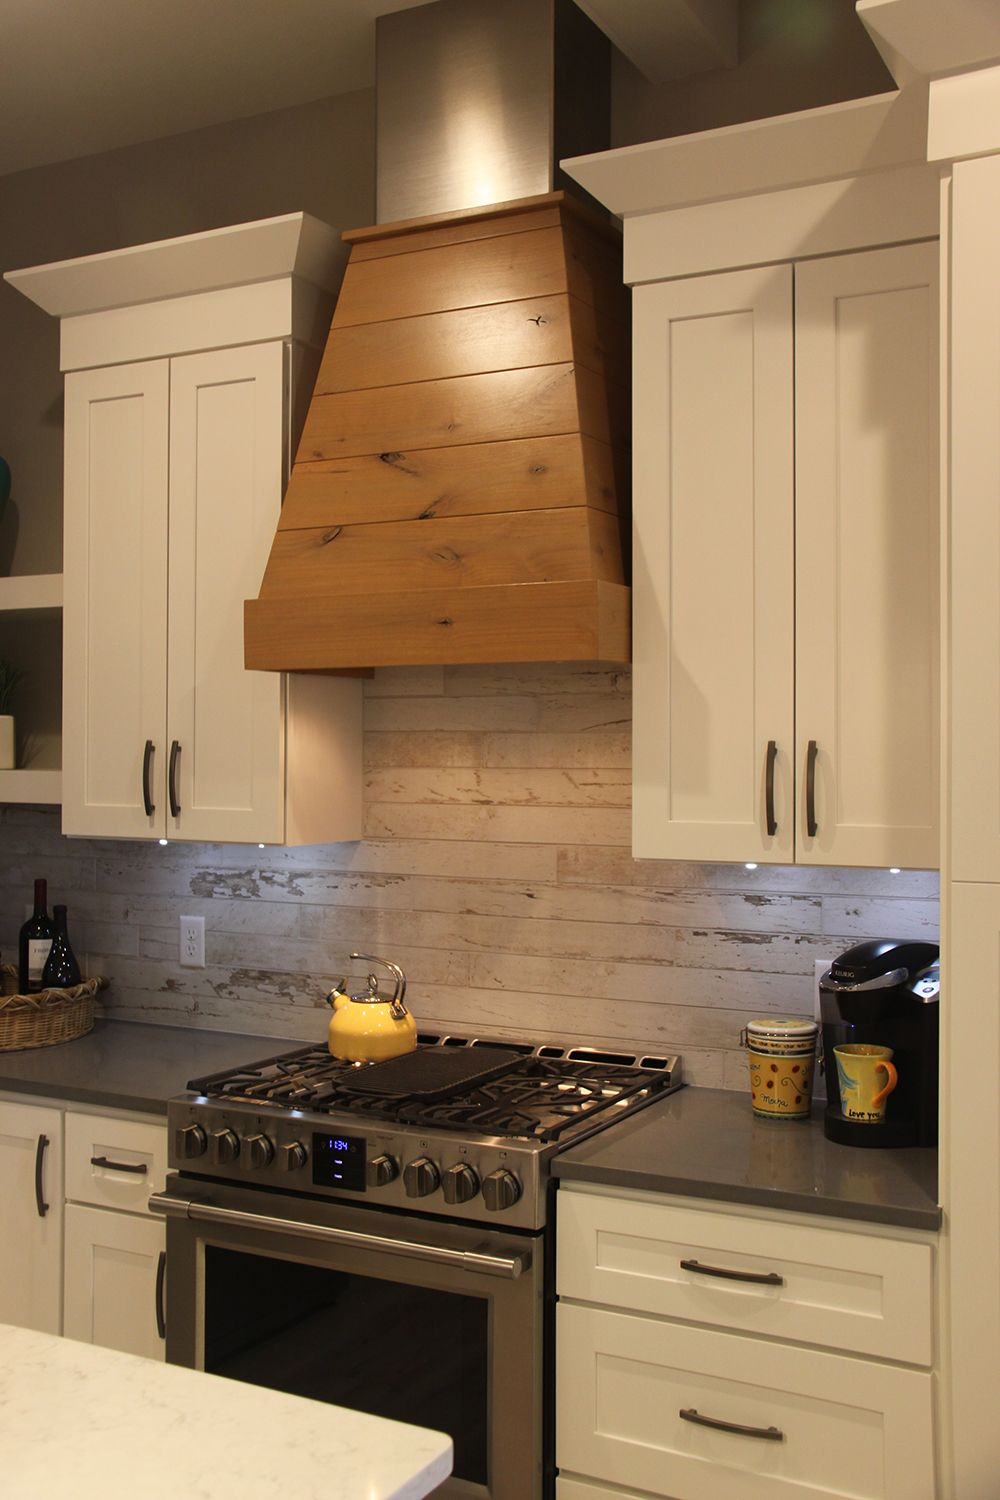 Wood Kitchen Backsplash, Ceramic